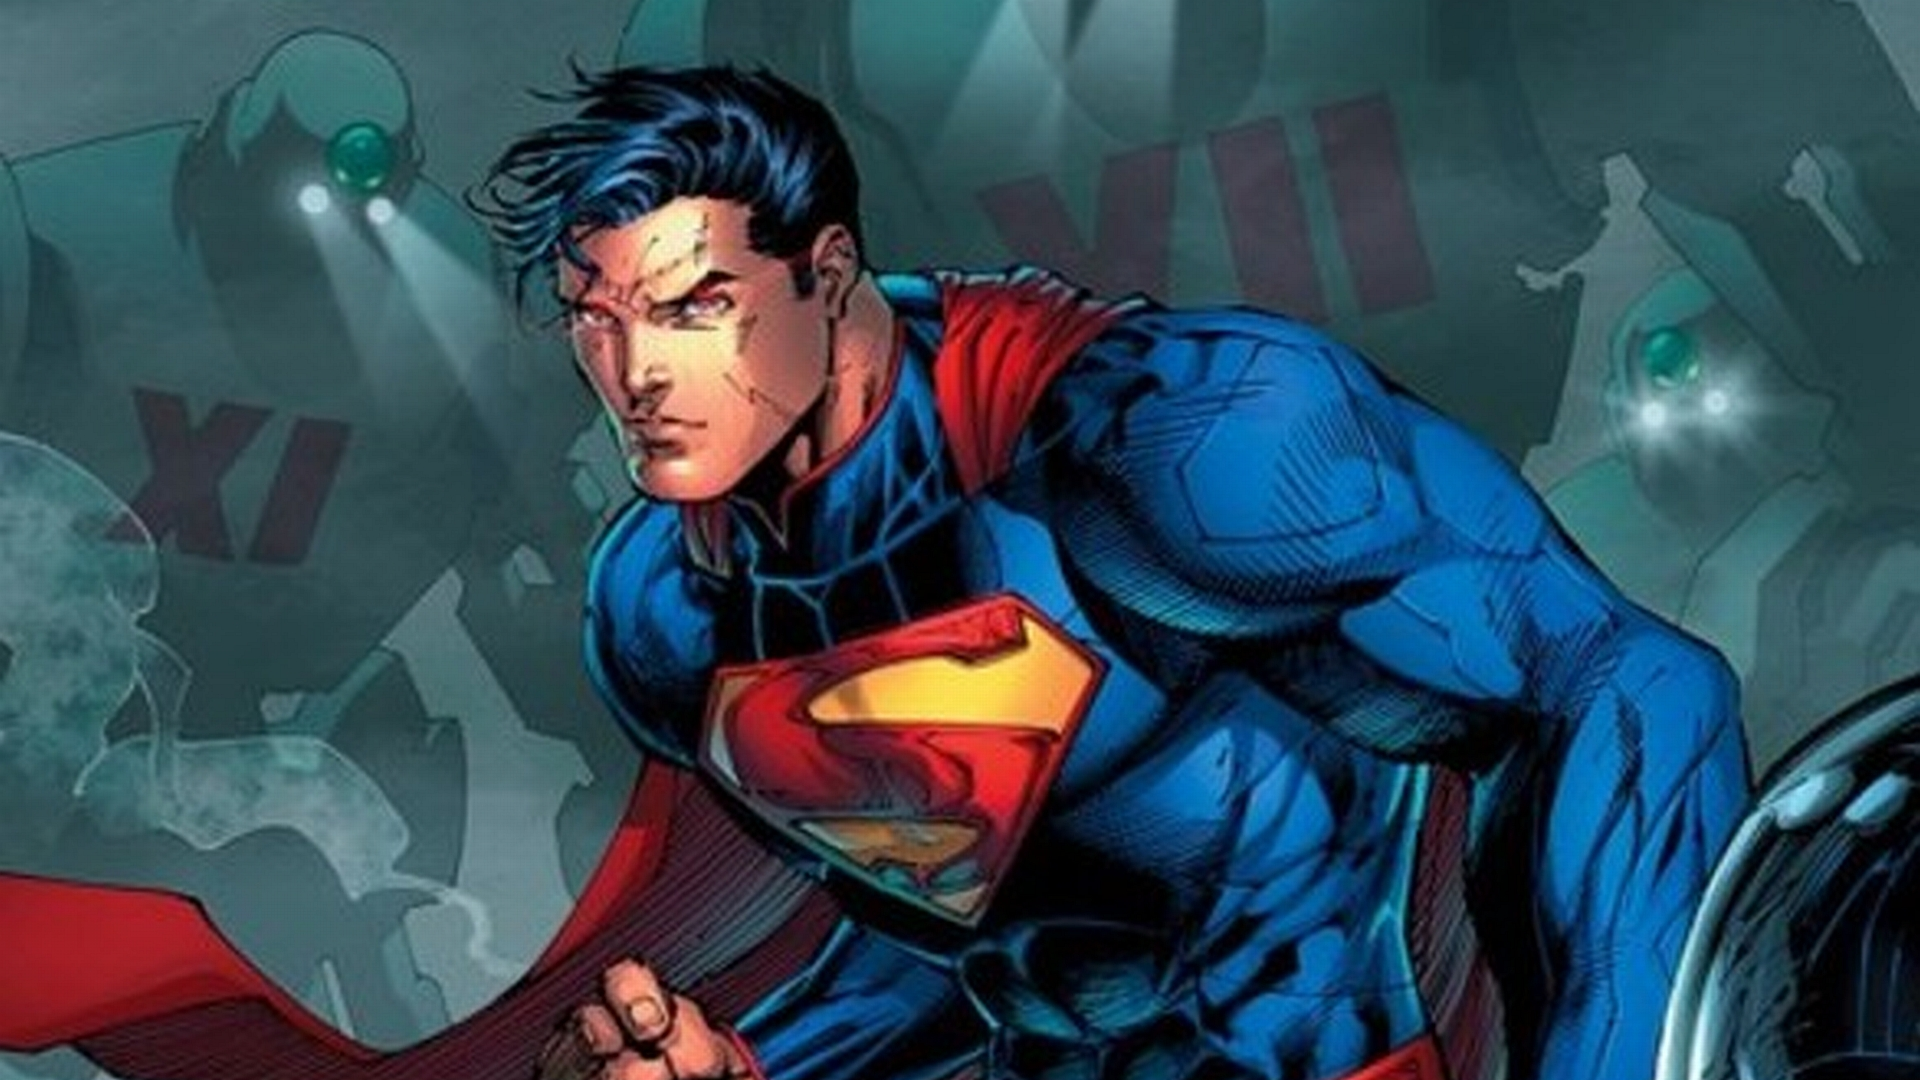 Superman wallpapers Superman background   Page 4 1920x1080